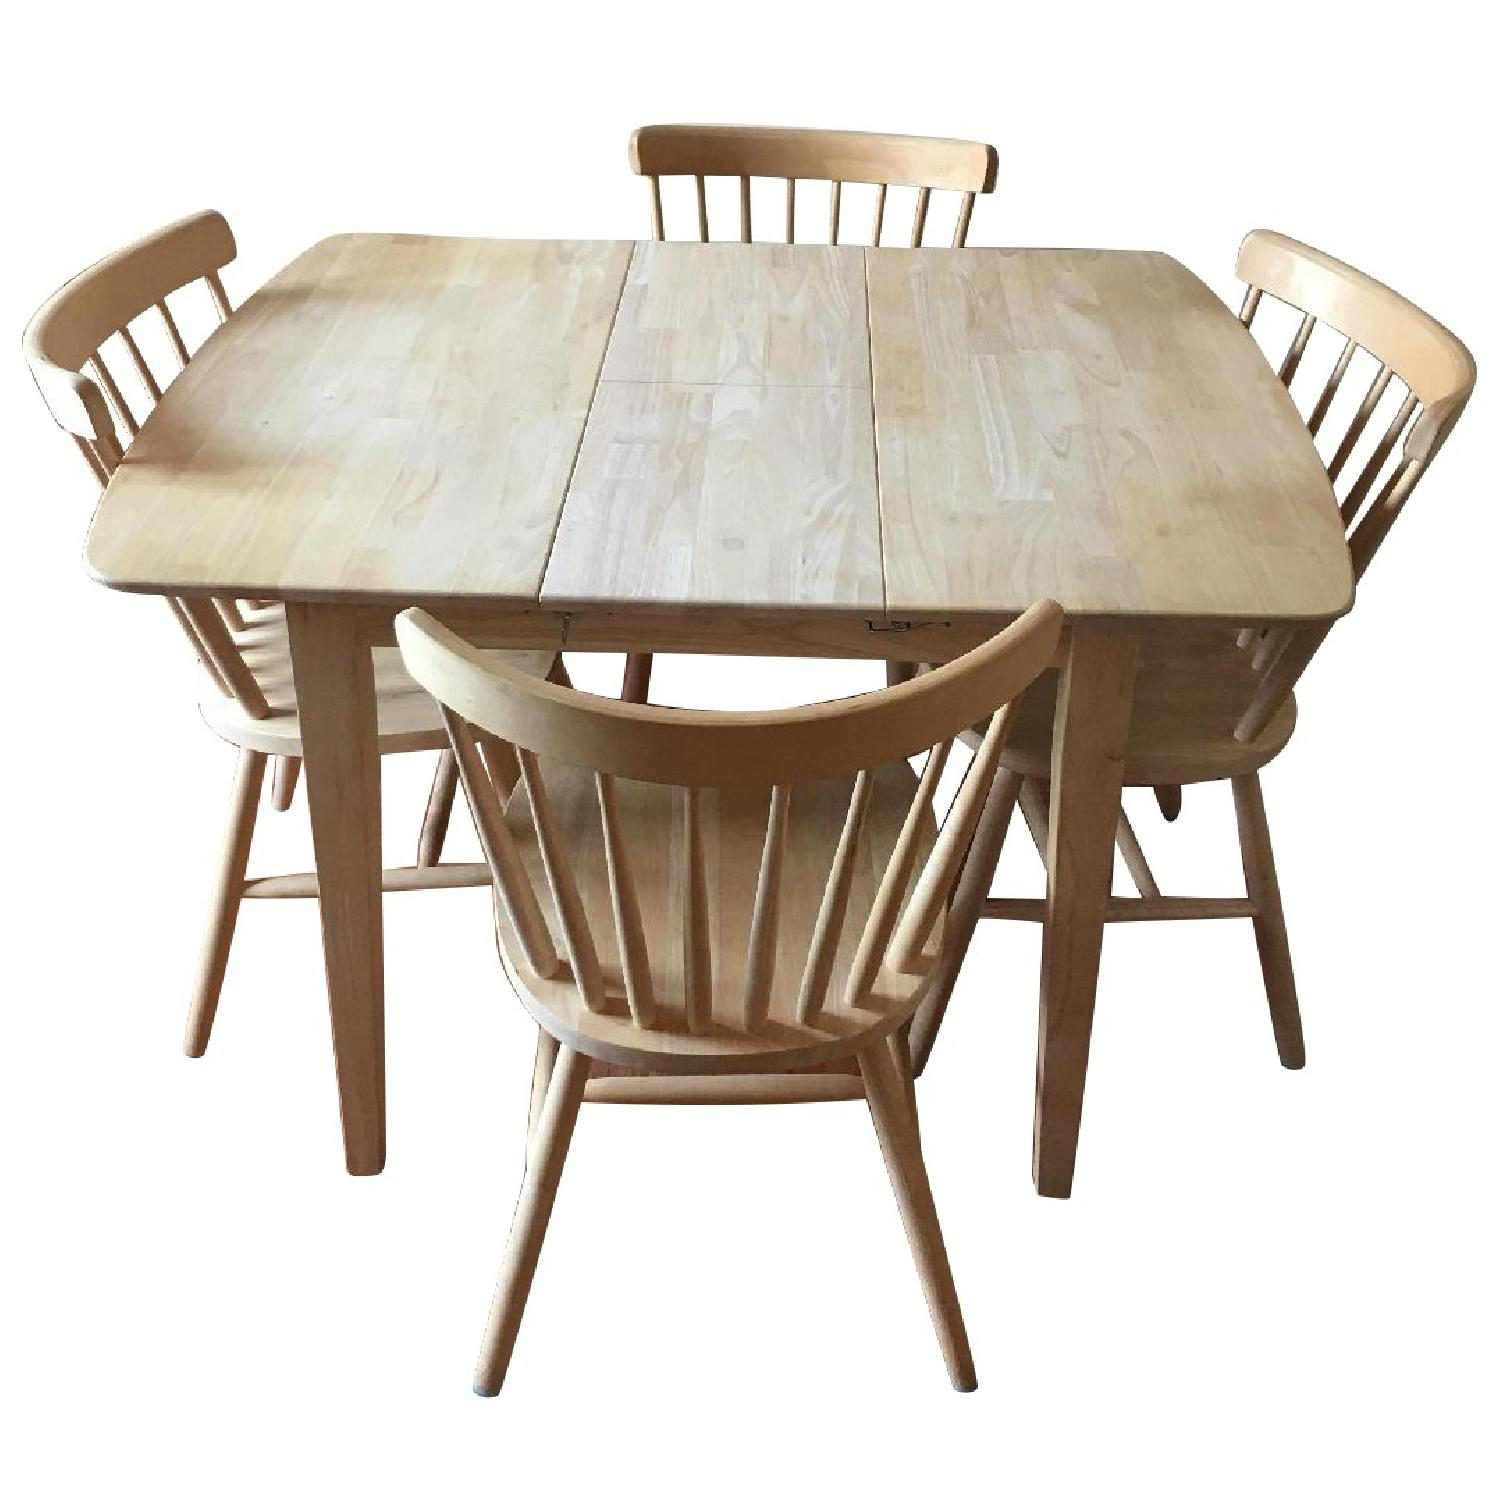 International Concepts Unfinished Wood Table w/ 4 Chairs - image-0